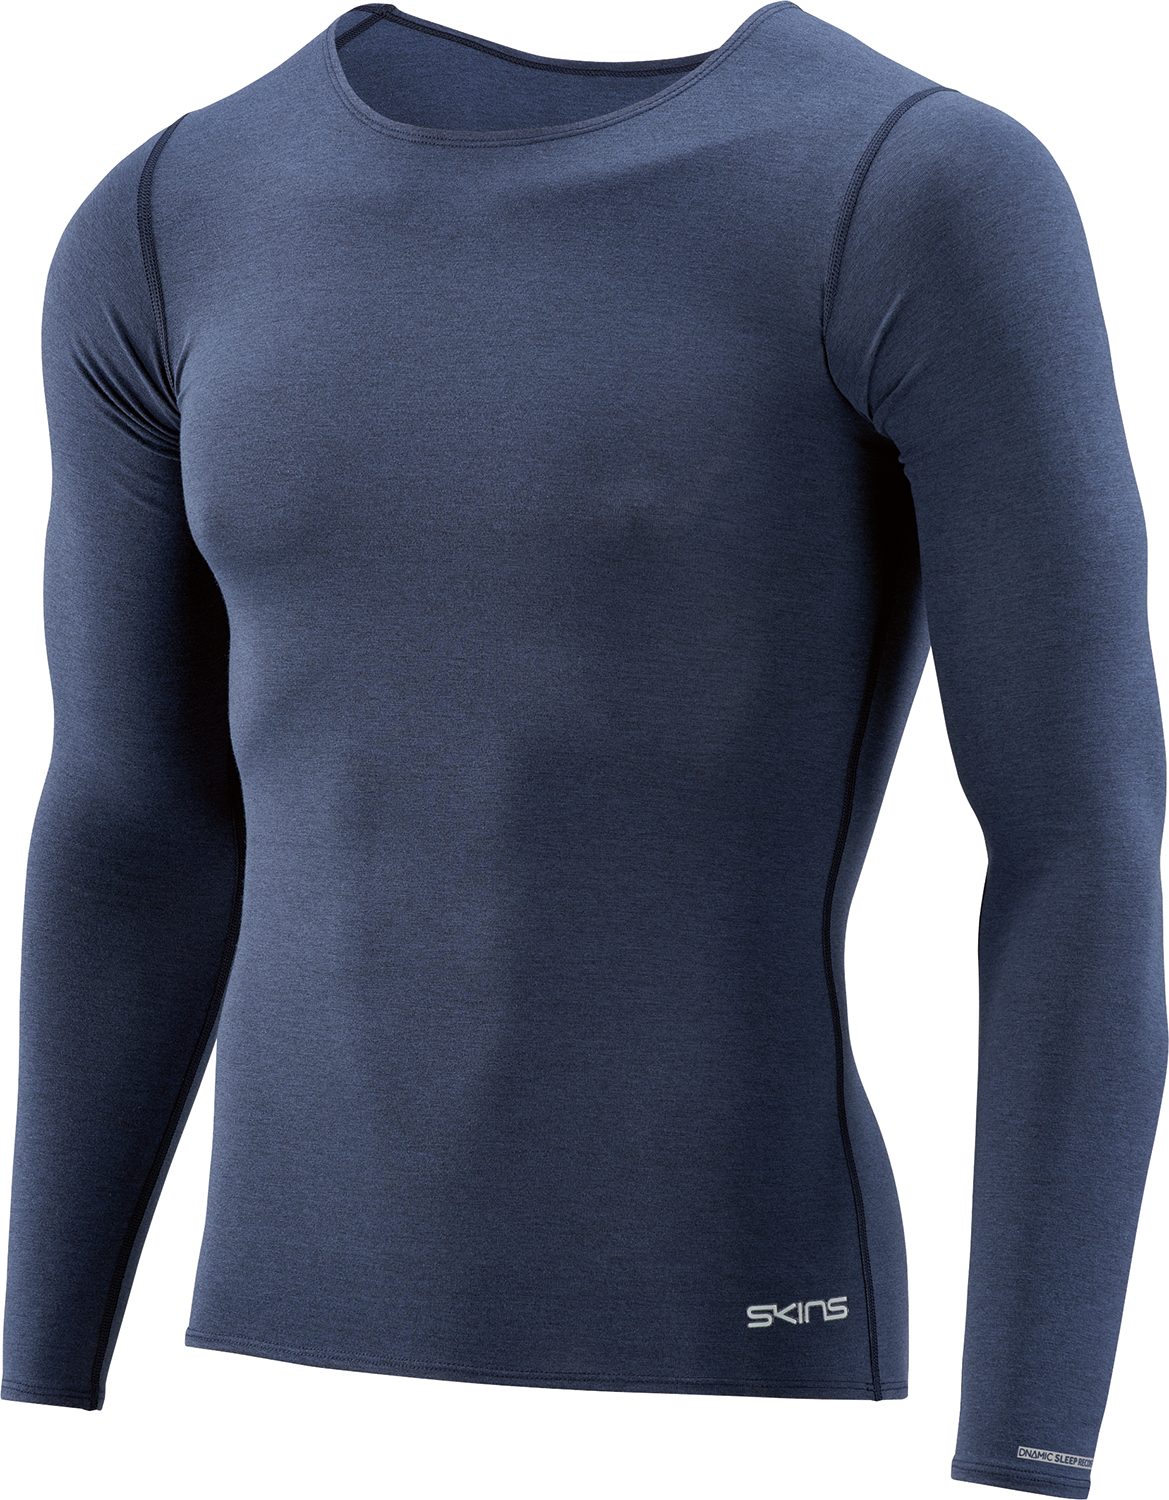 SKINS DNAmic Sleep Recovery Long Sleeve Tops | Body maintenance